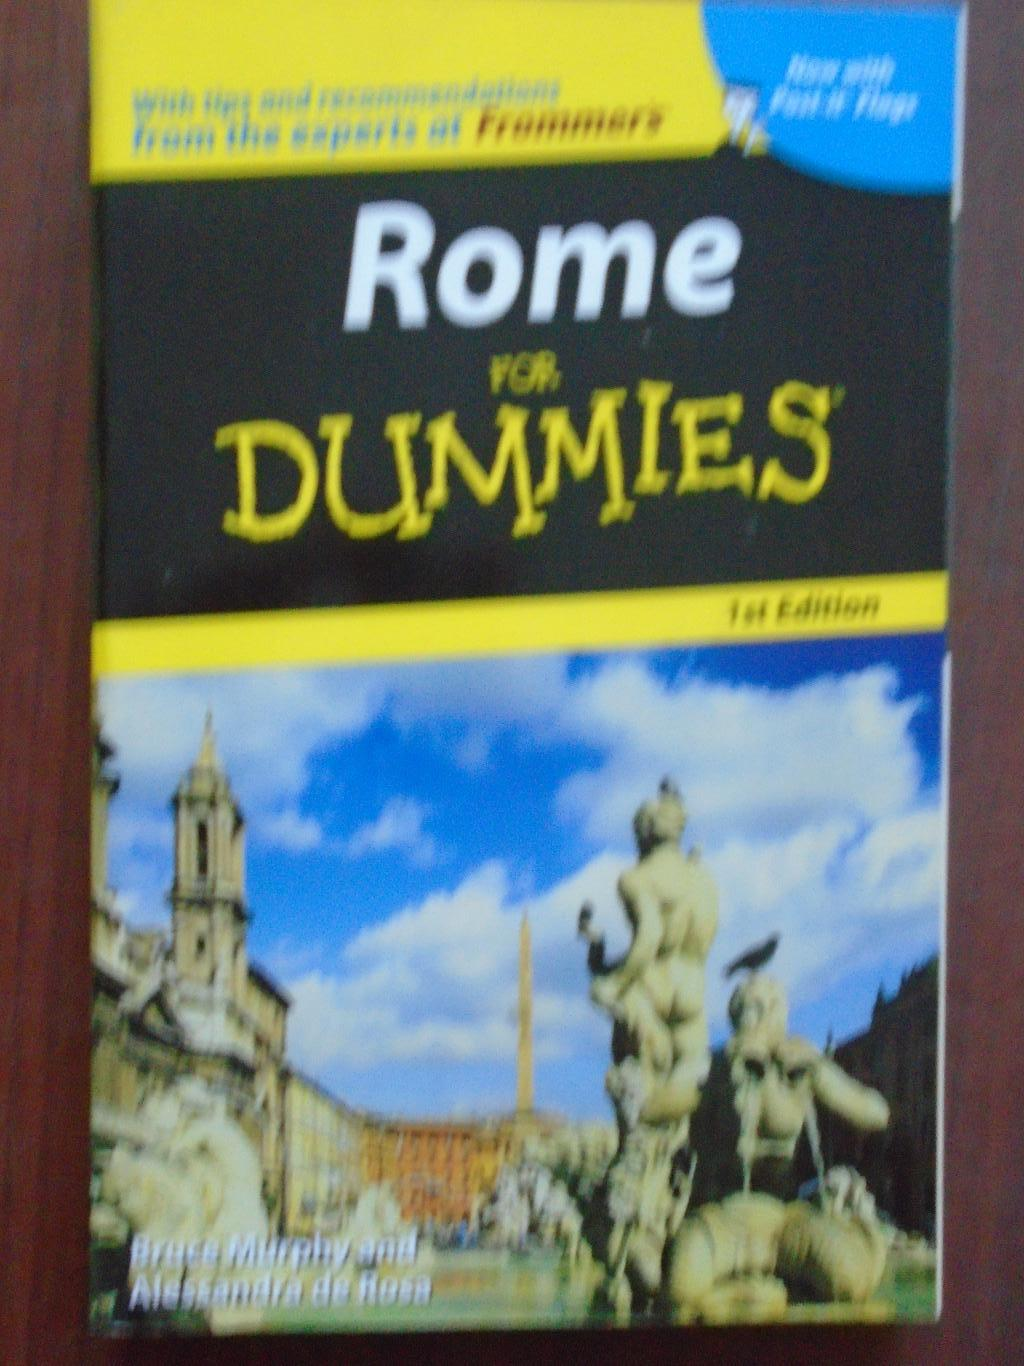 Rome for Dummies. 1st edition, Bruce Murphy and Alessandra de Rosa